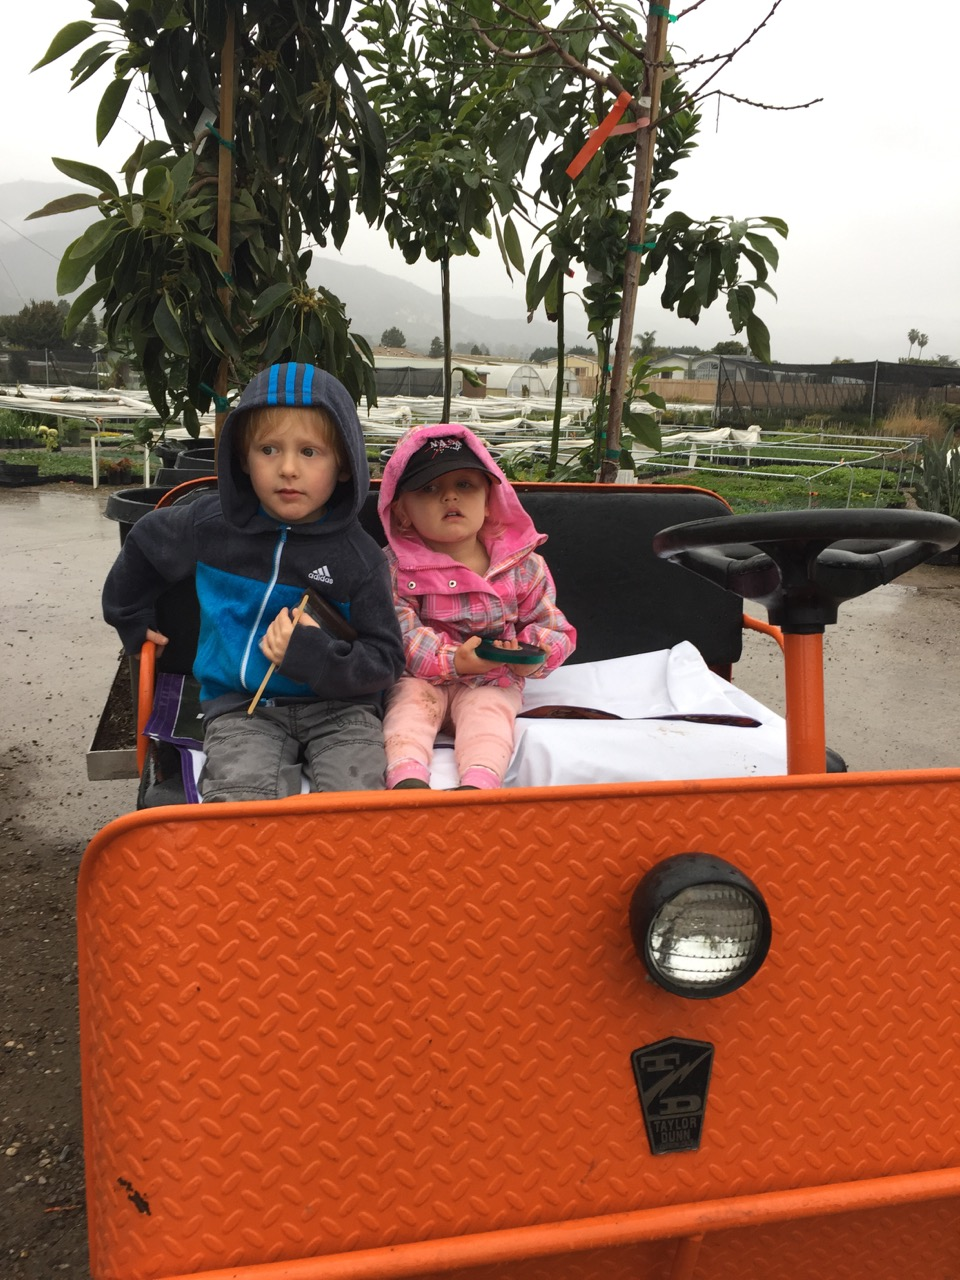 Kiddos enjoying a wet morning with Dad selecting plants for a garden.